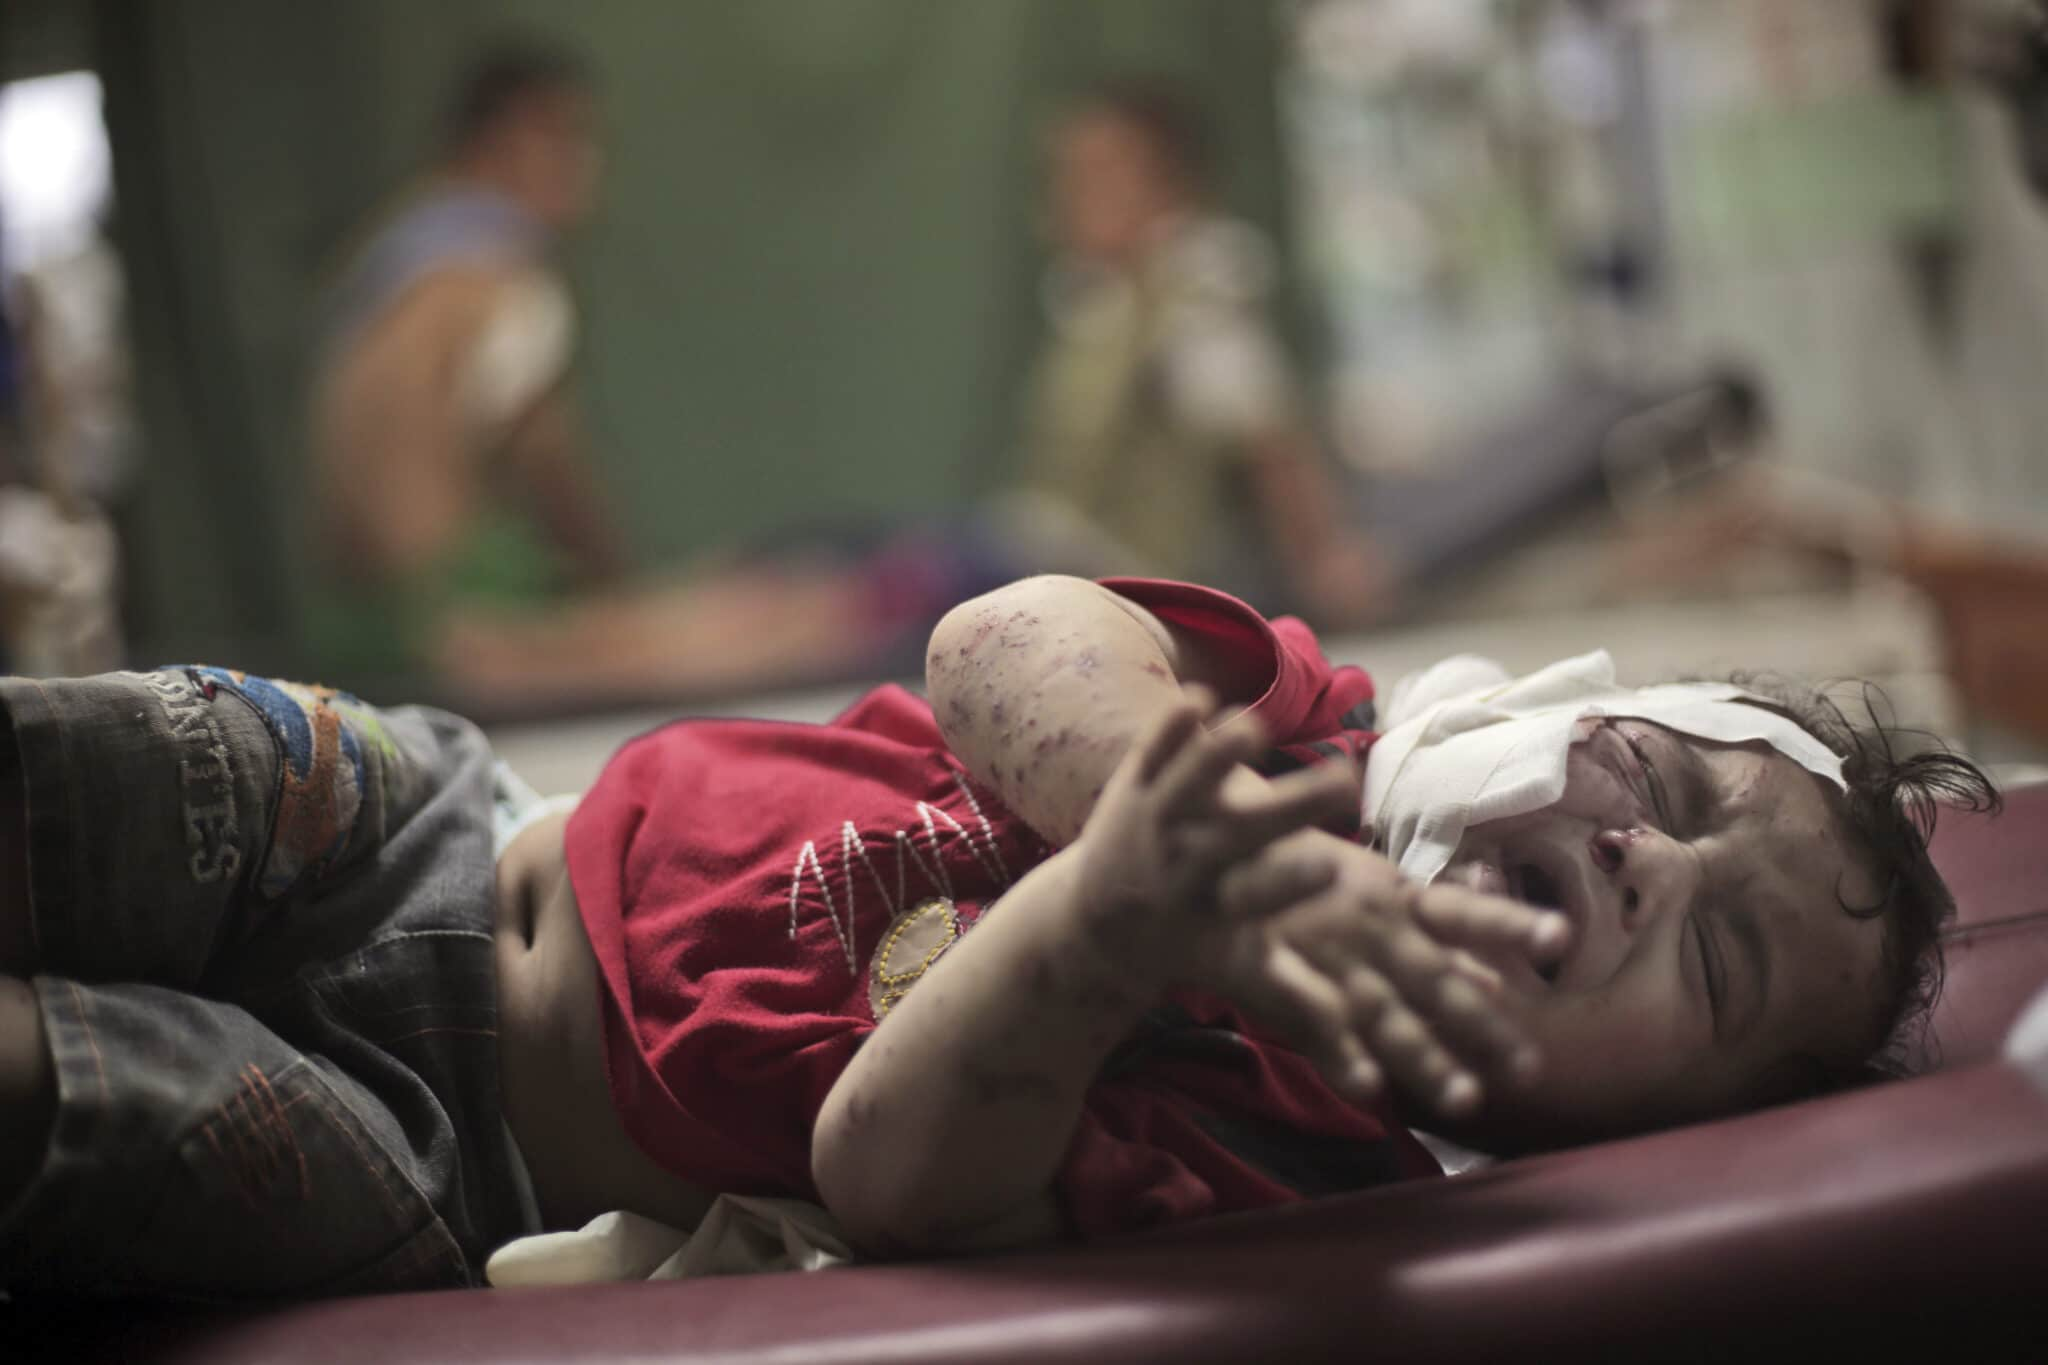 Beit Lahiya - July 30, 2014 - a Palestinian boy cries while receiving treatment for injuries caused by an Israeli strike at a U.N. school in Jebaliya refugee camp, northern Gaza Strip. A fierce debate is raging within Israel's military over the extent to which soldiers should be held legally accountable for their actions during Gaza war(AP Photo/Khalil Hamra, File)